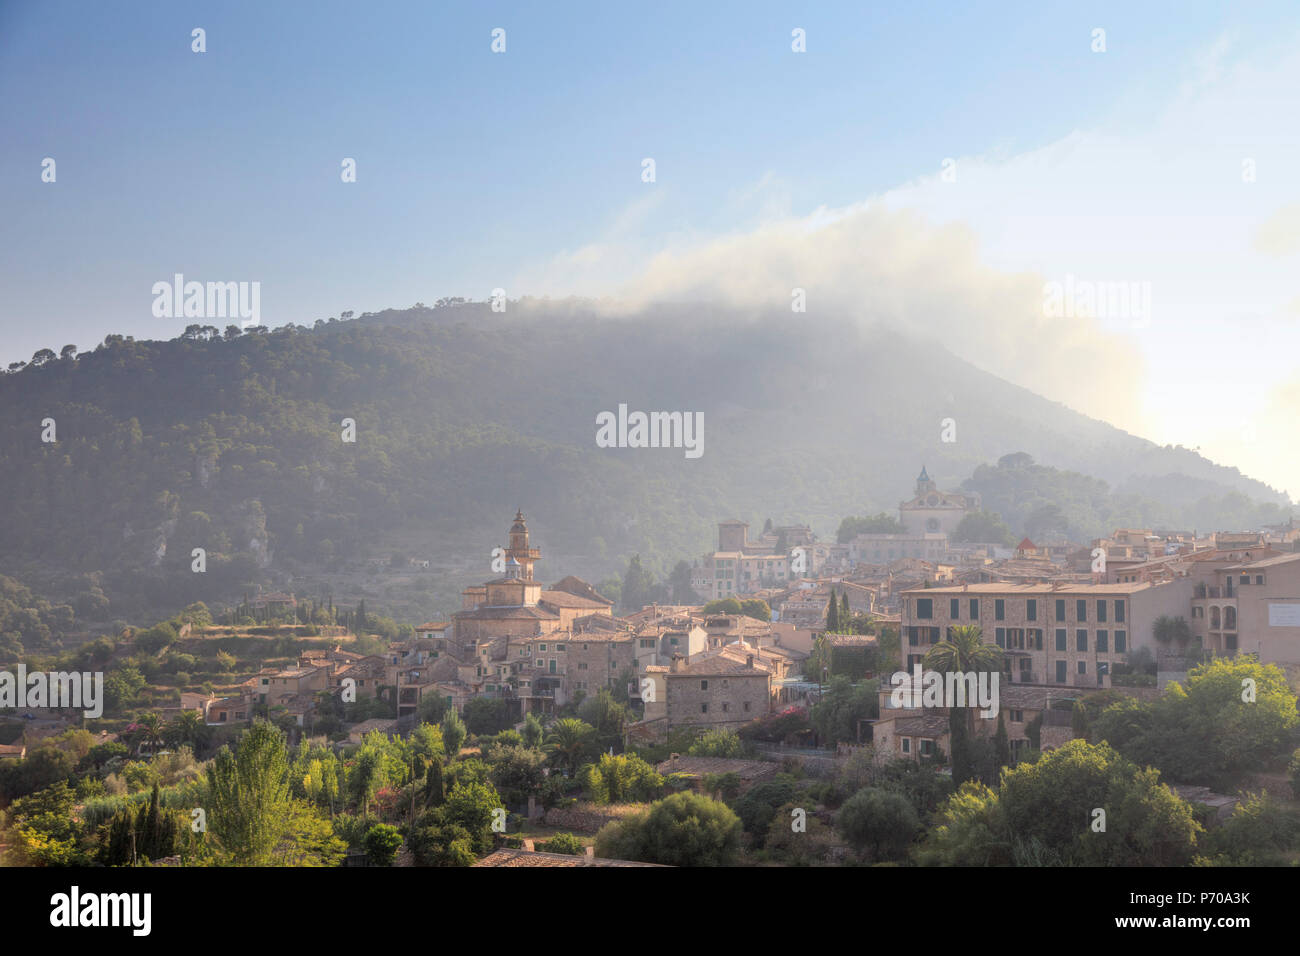 Spain, Balearic Islands, Mallorca, Valldemossa Mountain Village Stock Photo